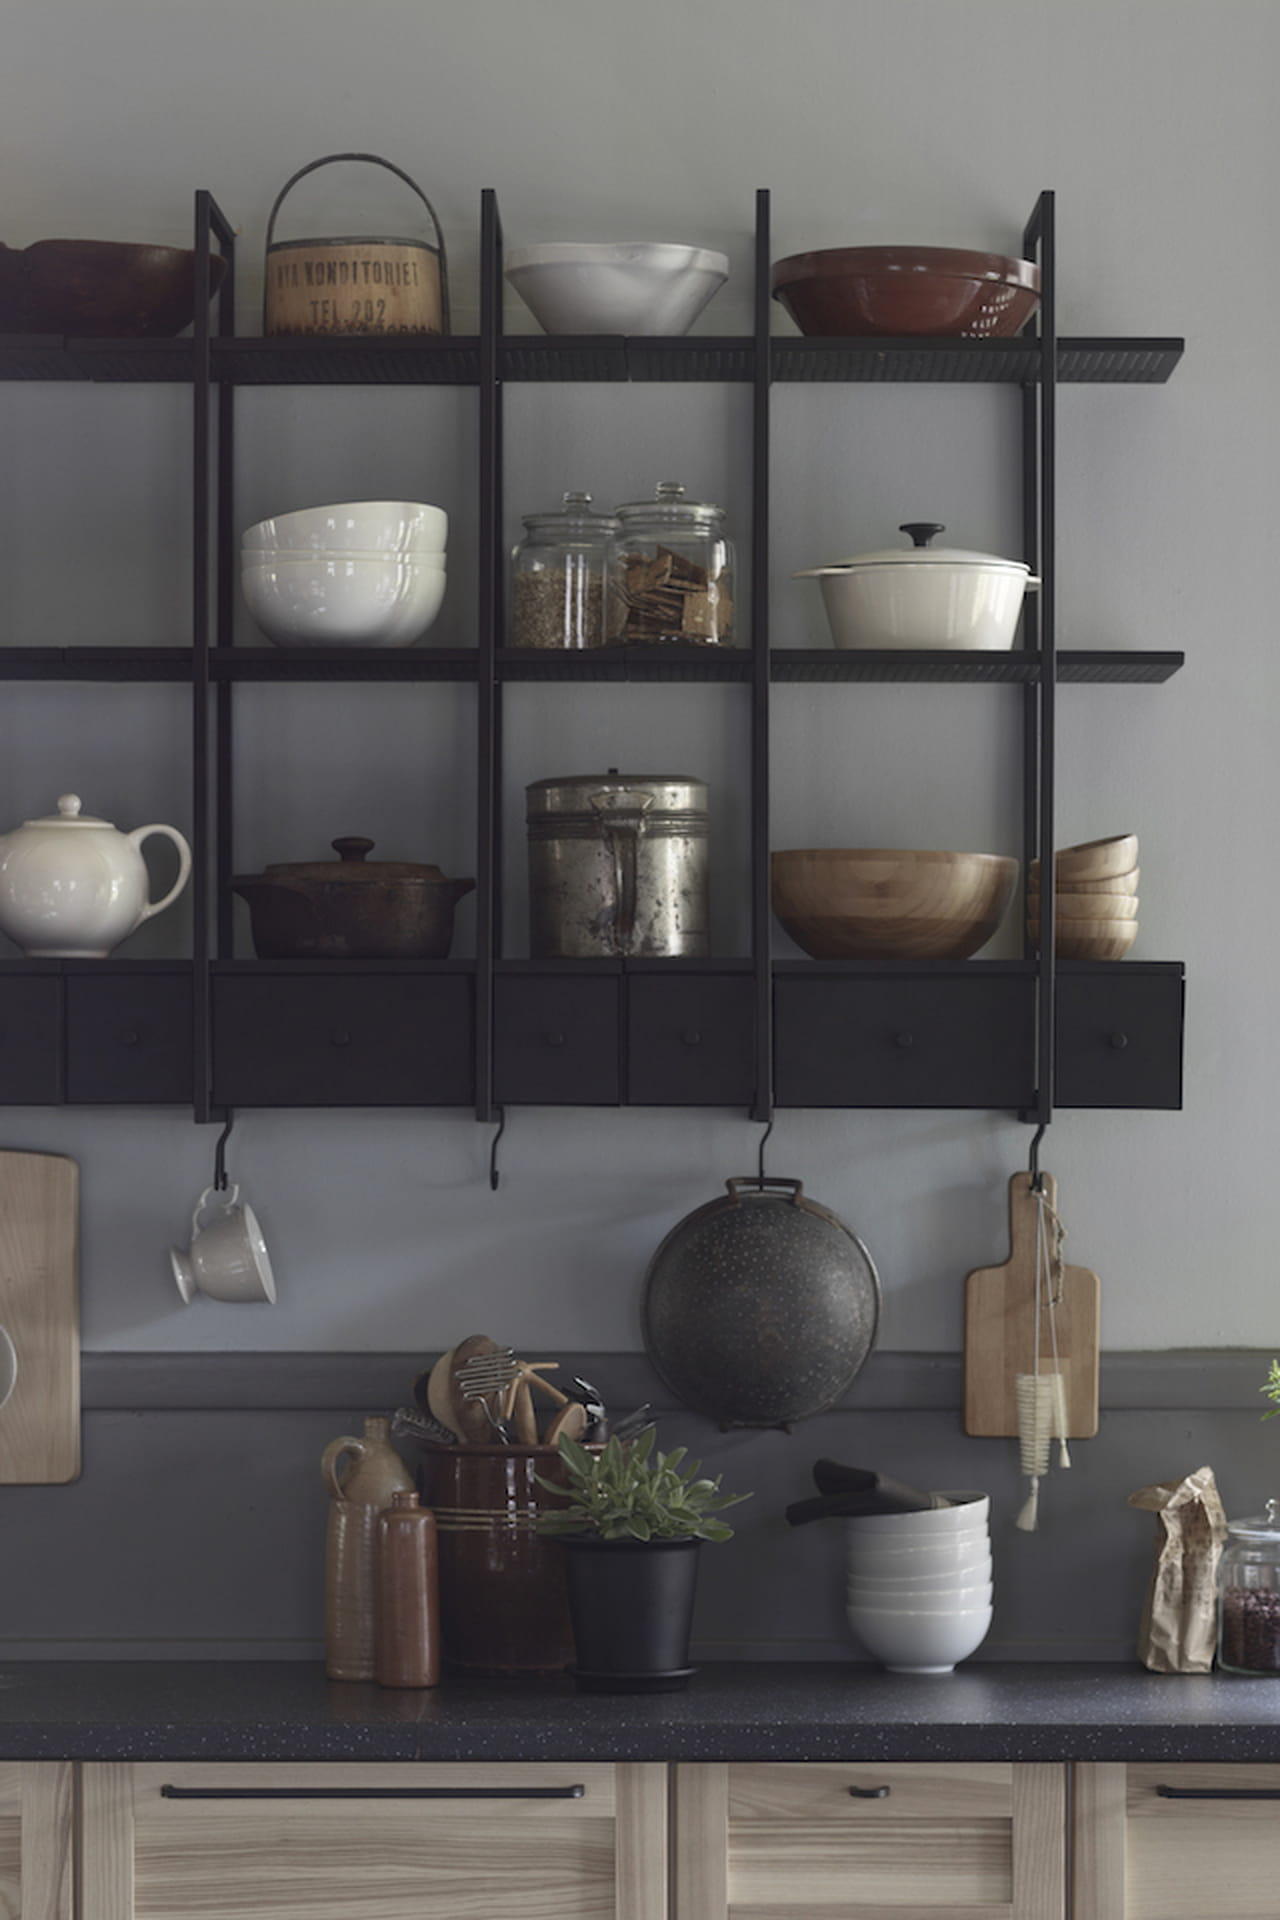 Tavolino ikea for Accessori pensili cucina